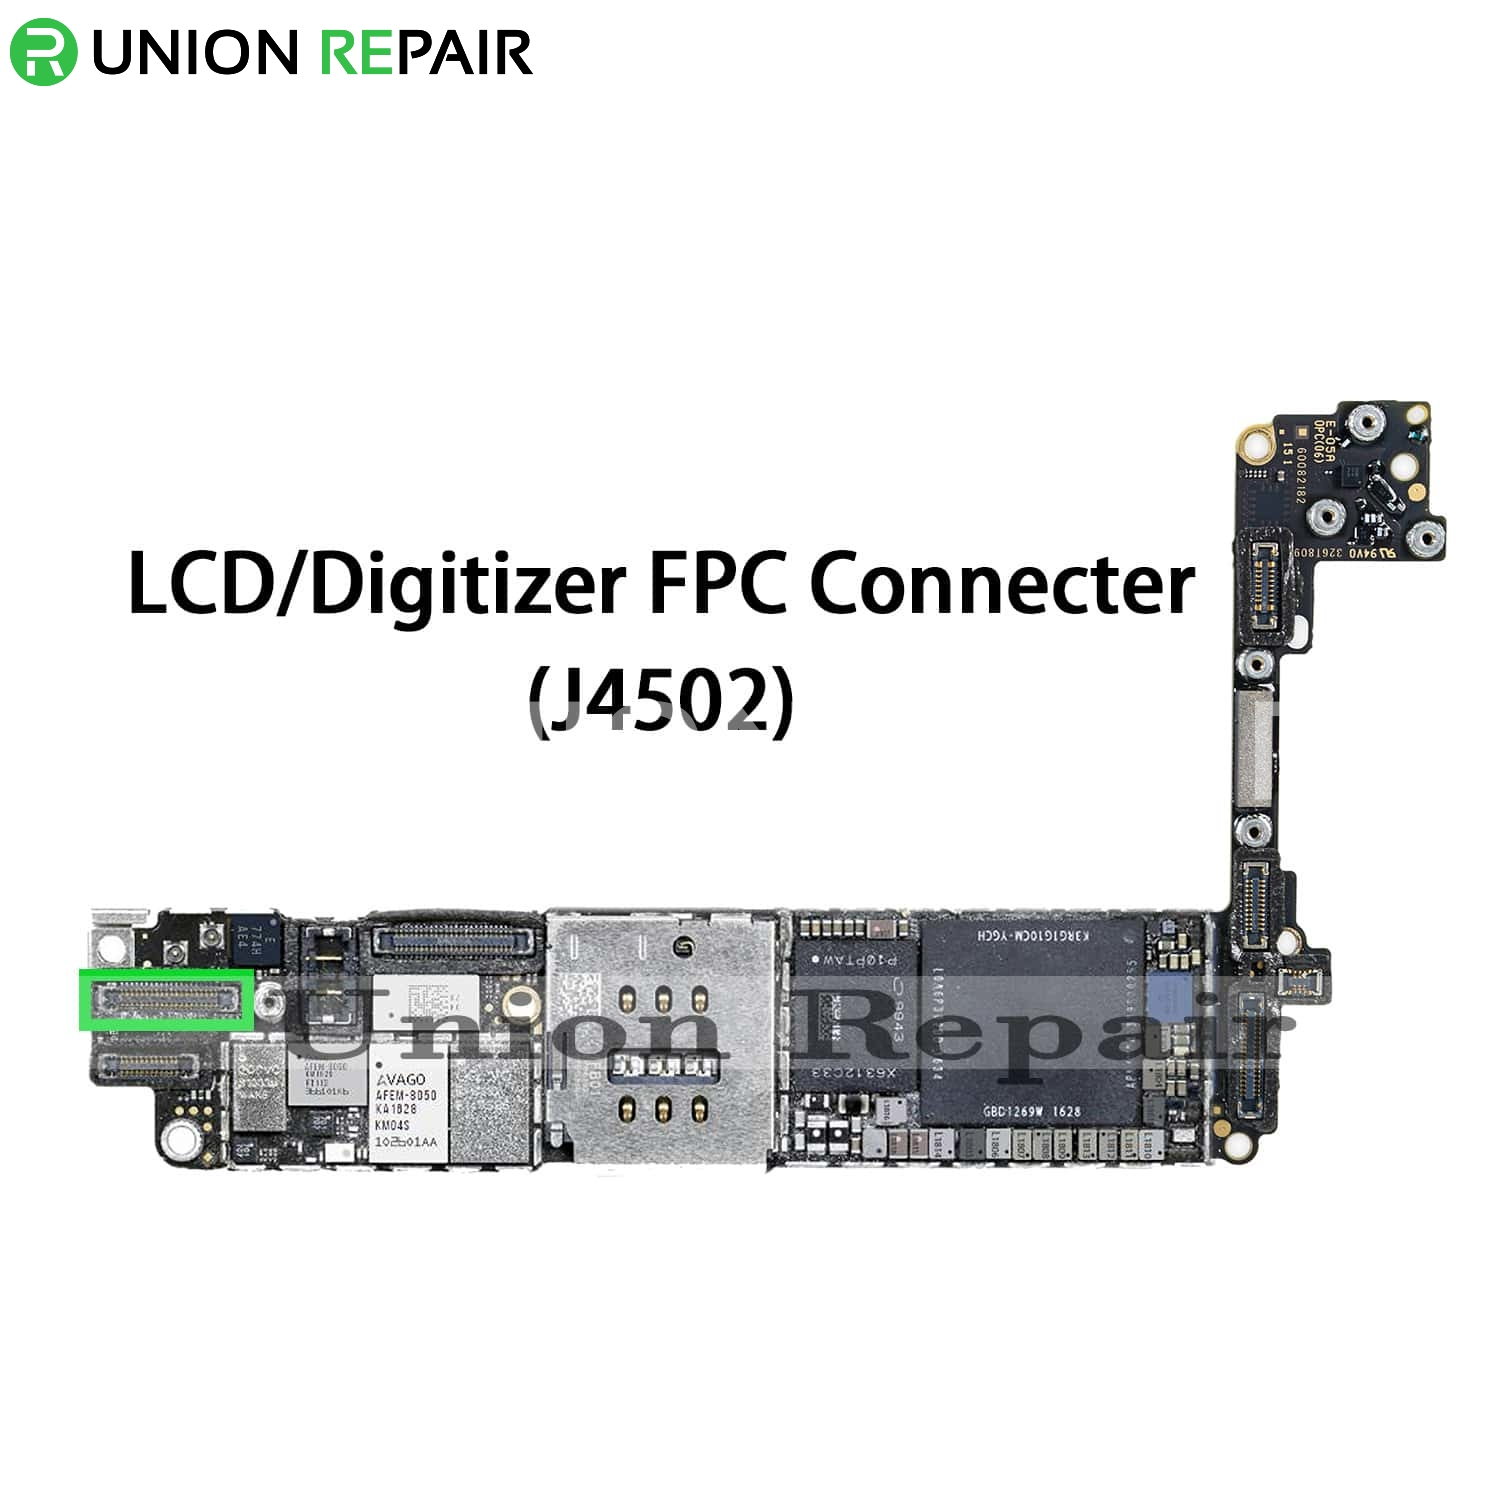 Replacement for iPhone 7 LCD Digitizer Connector Port Onboard